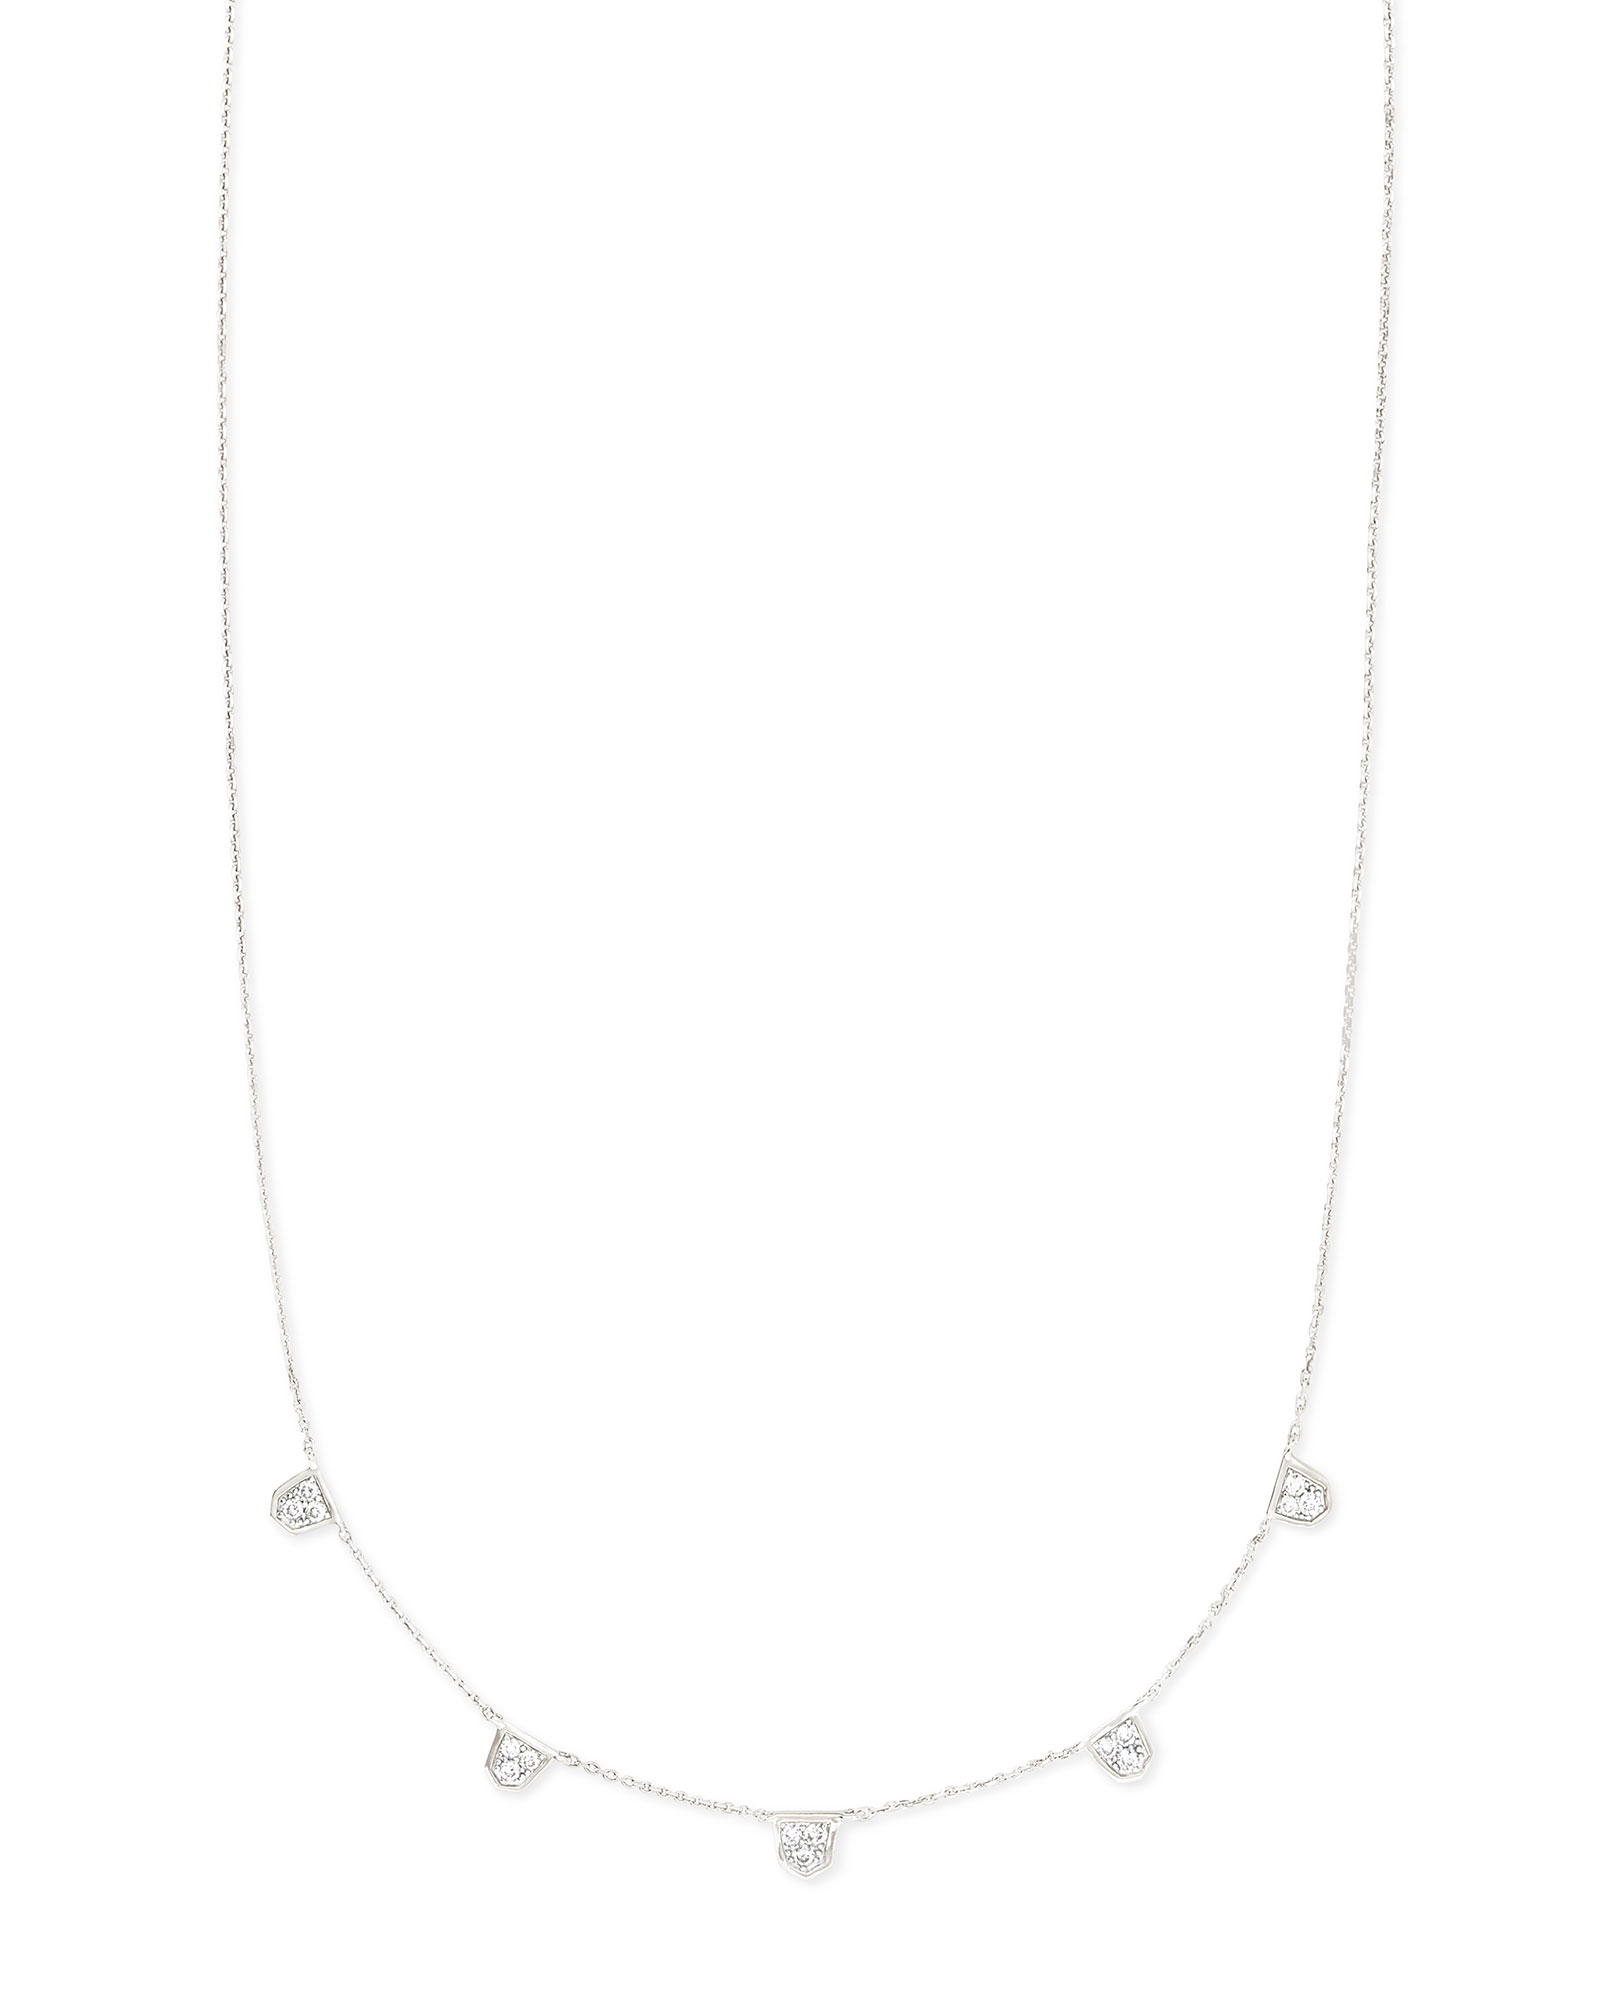 Shannon 14k White Gold Collar Necklace in White Diamond